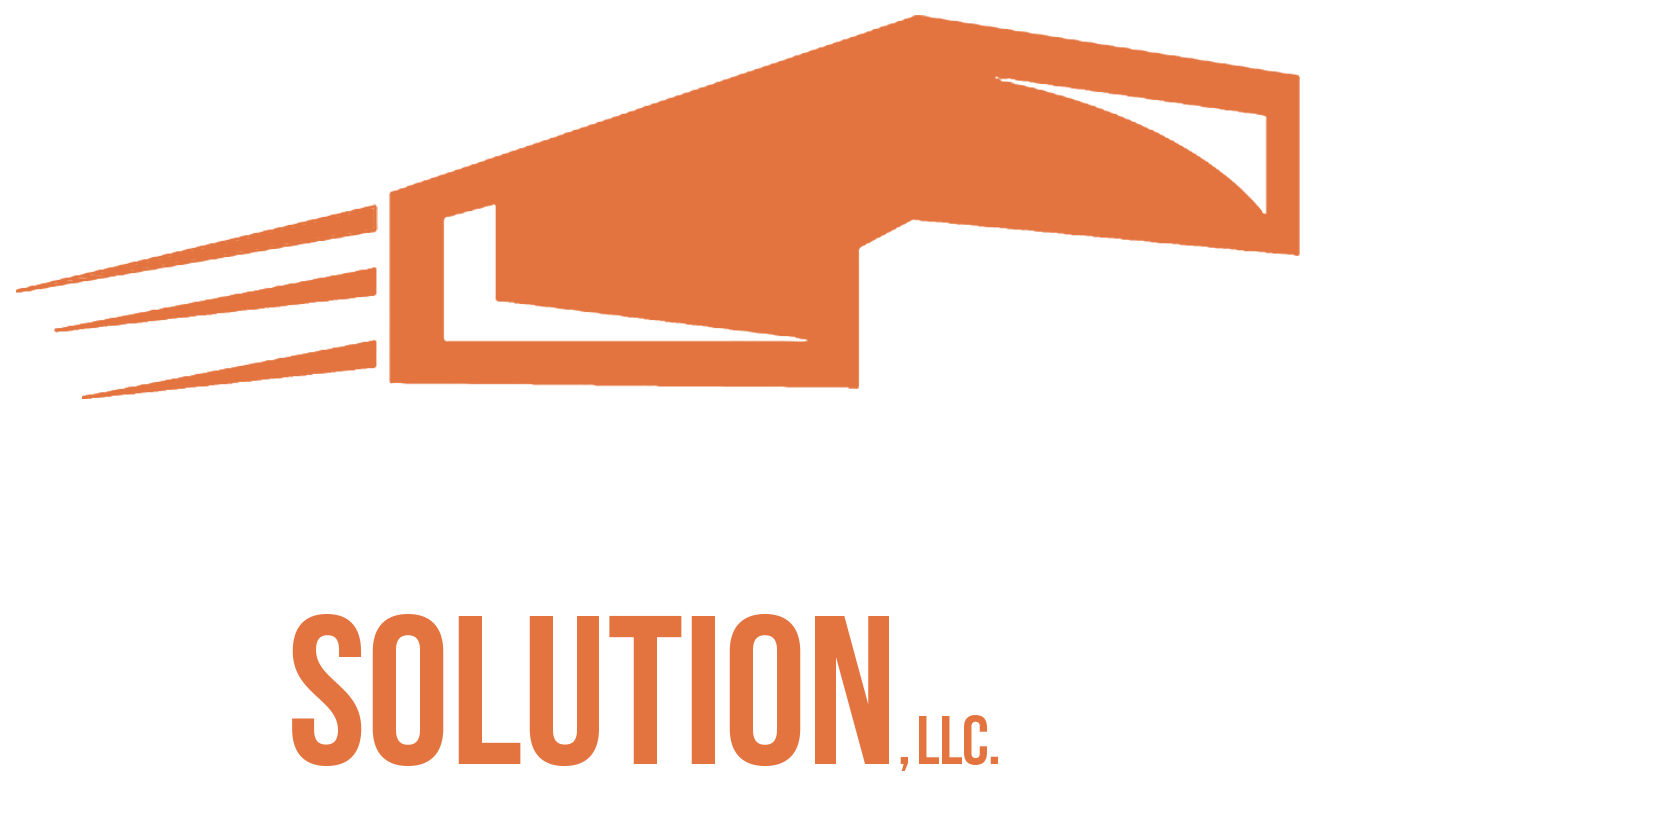 JG Moving Solution, LLC Logo